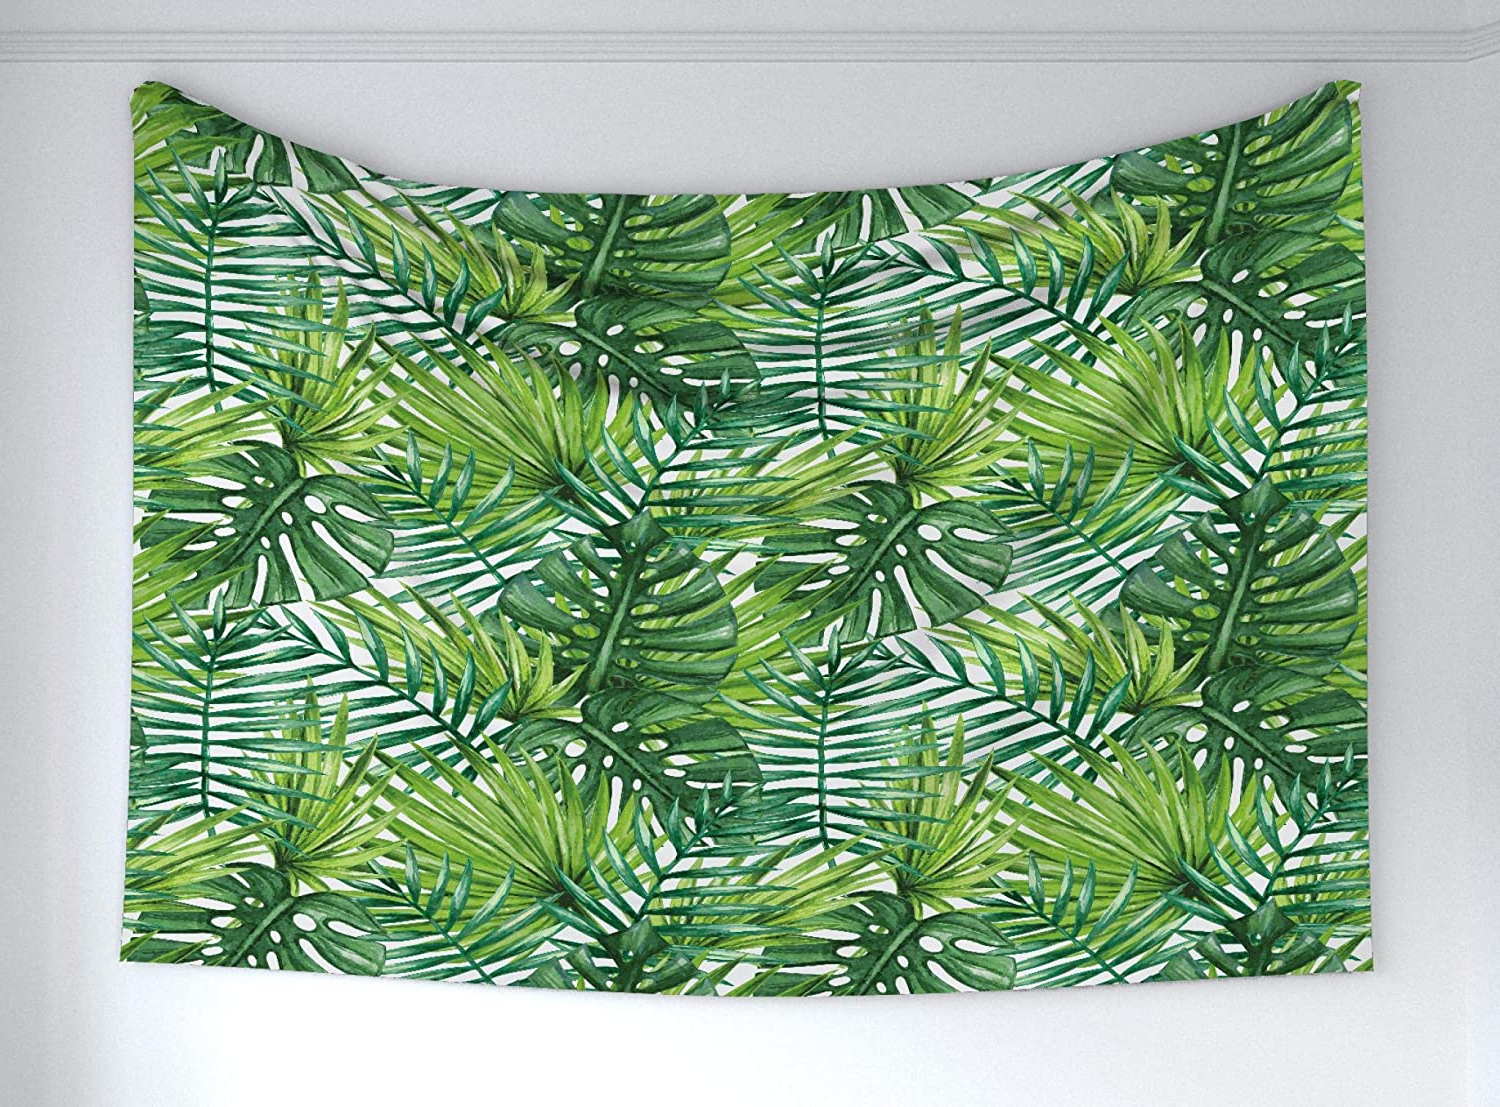 Blended Fabric Palm Tree Wall Hangings With Regard To Latest Ambesonne Leaf Tapestry, Tropical Exotic Banana Forest Palm Tree Leaves Watercolor Design Image, Fabric Wall Hanging Decor For Bedroom Living Room (View 11 of 20)